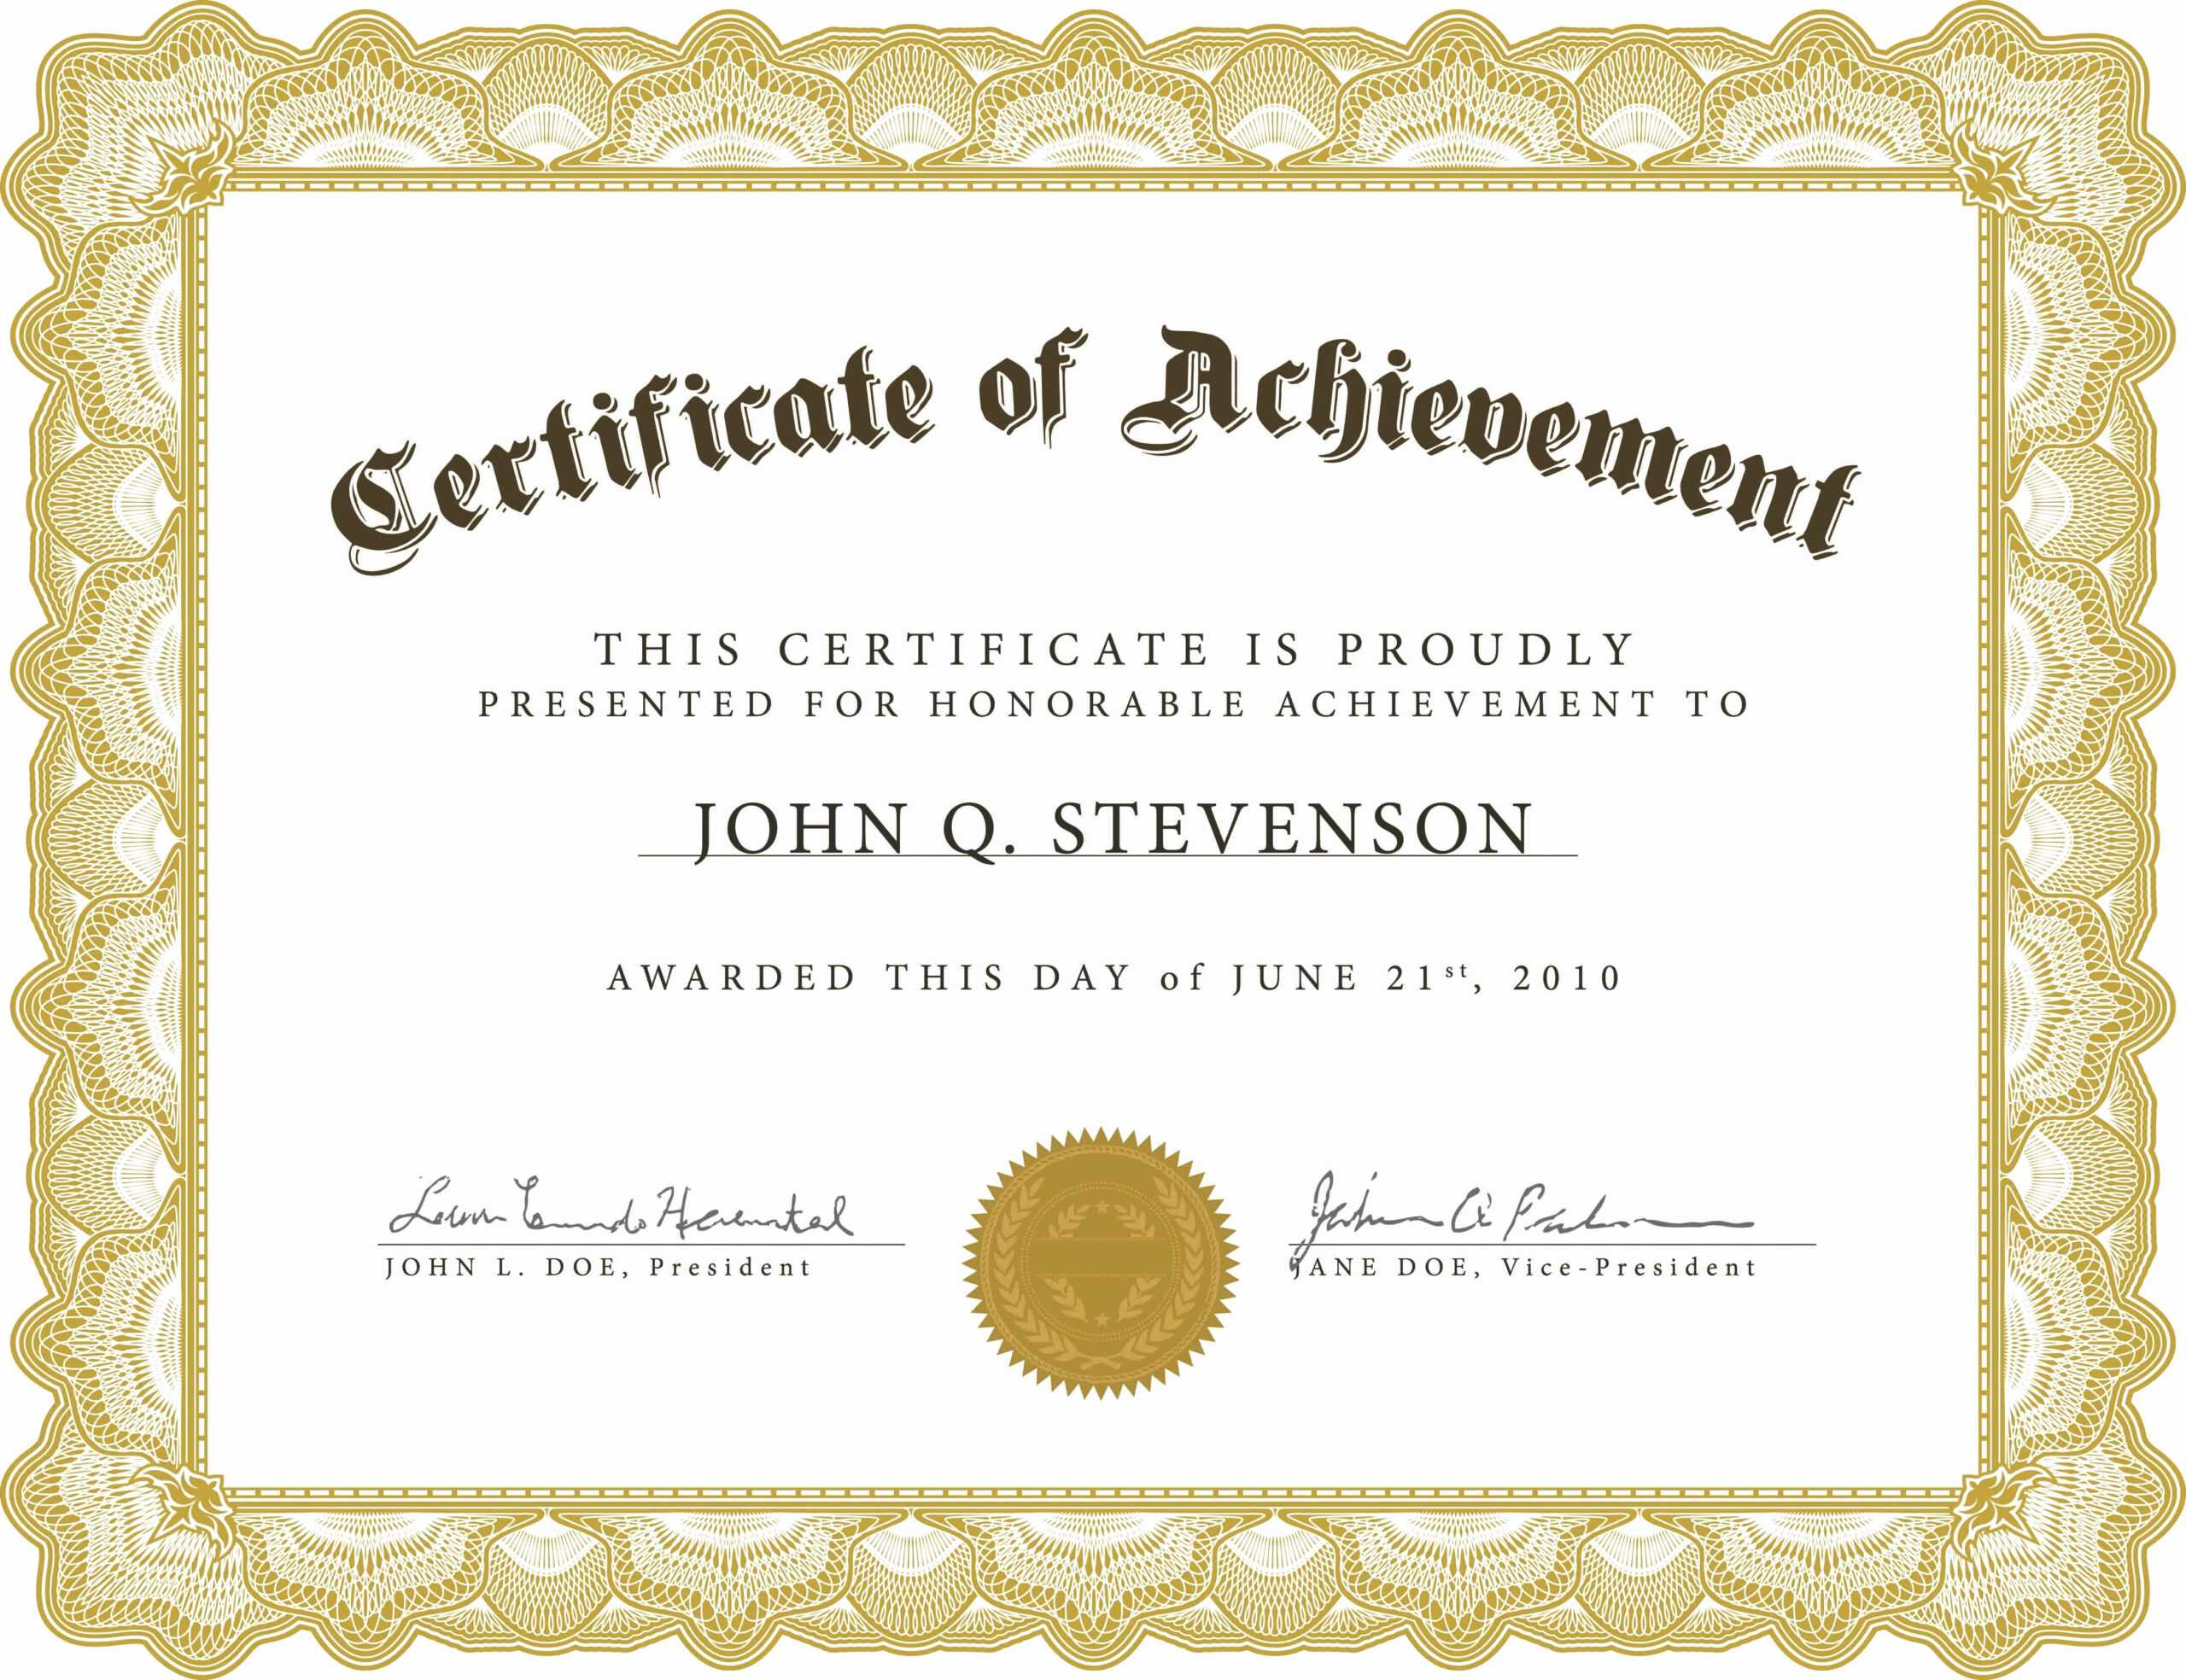 Long Service Certificate Template Sample - Zohre For Long Service Certificate Template Sample